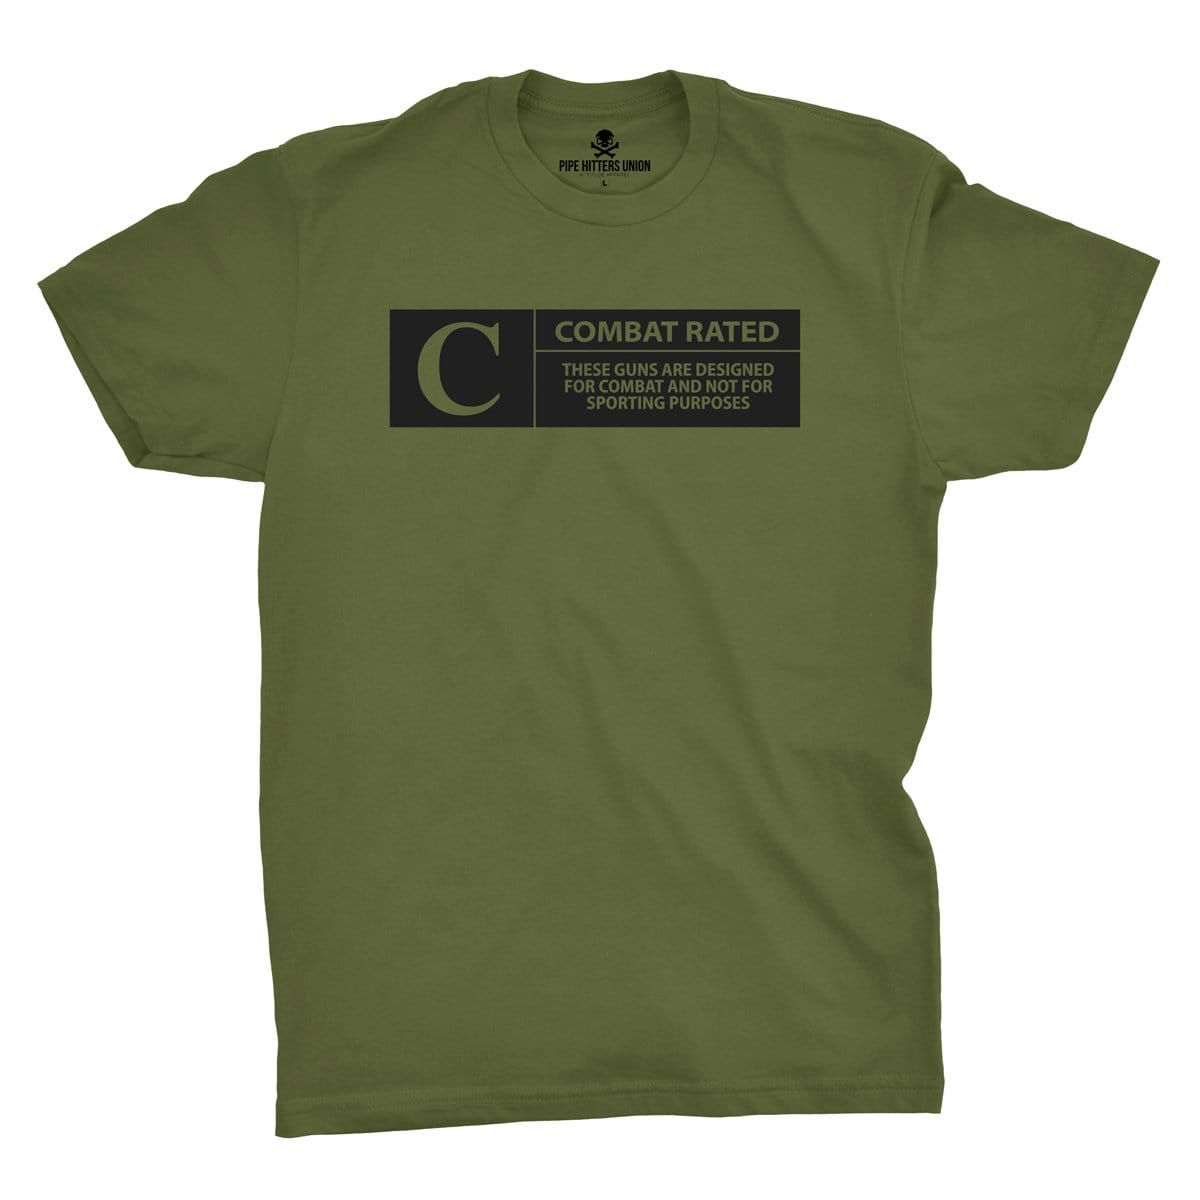 Combat Rated - Military Green - T-Shirts - Pipe Hitters Union